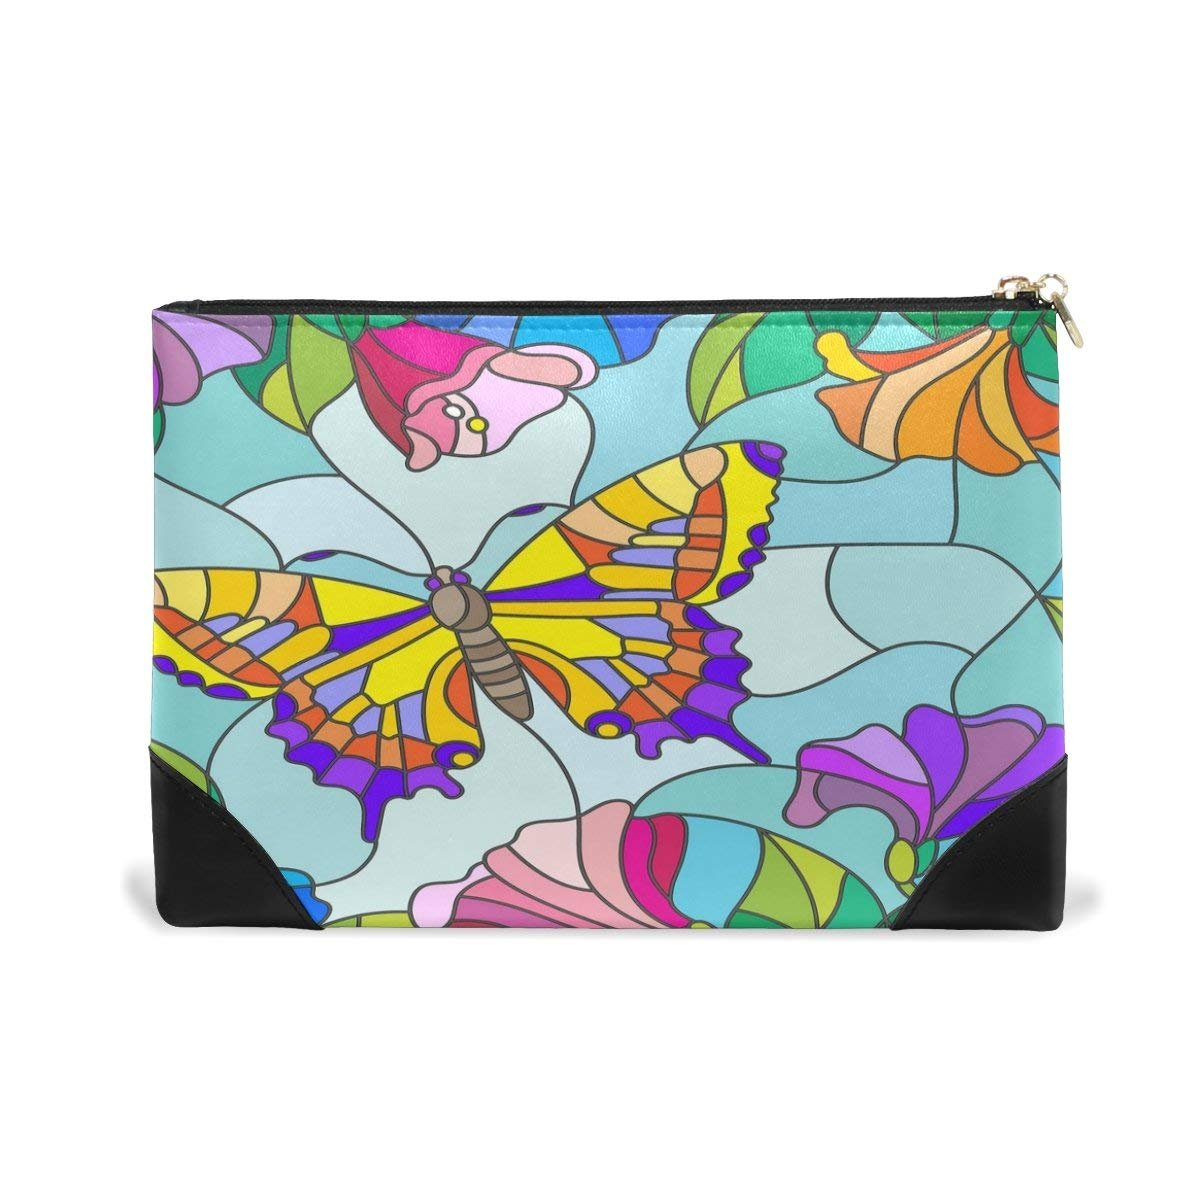 BLEFE Stained Glass Butterfly Makeup Cosmetic Bag Pouch Travel Bag for Women Girls